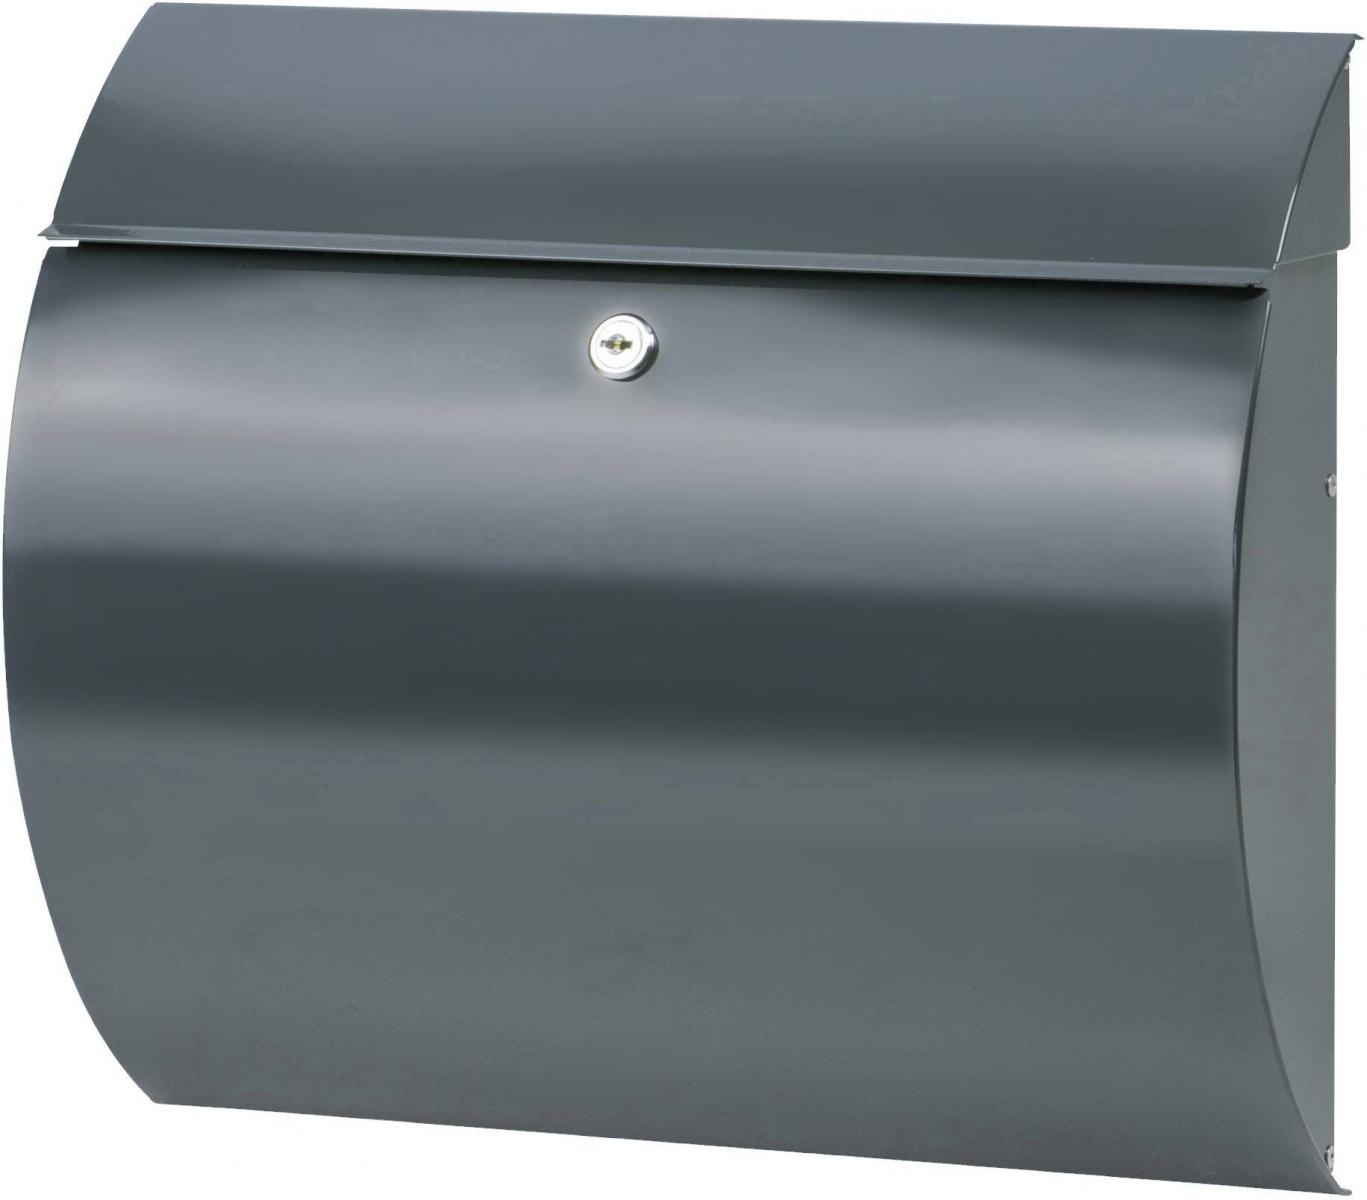 Toscana Letterbox 856ANT - Anthracite – Now Only £30.00